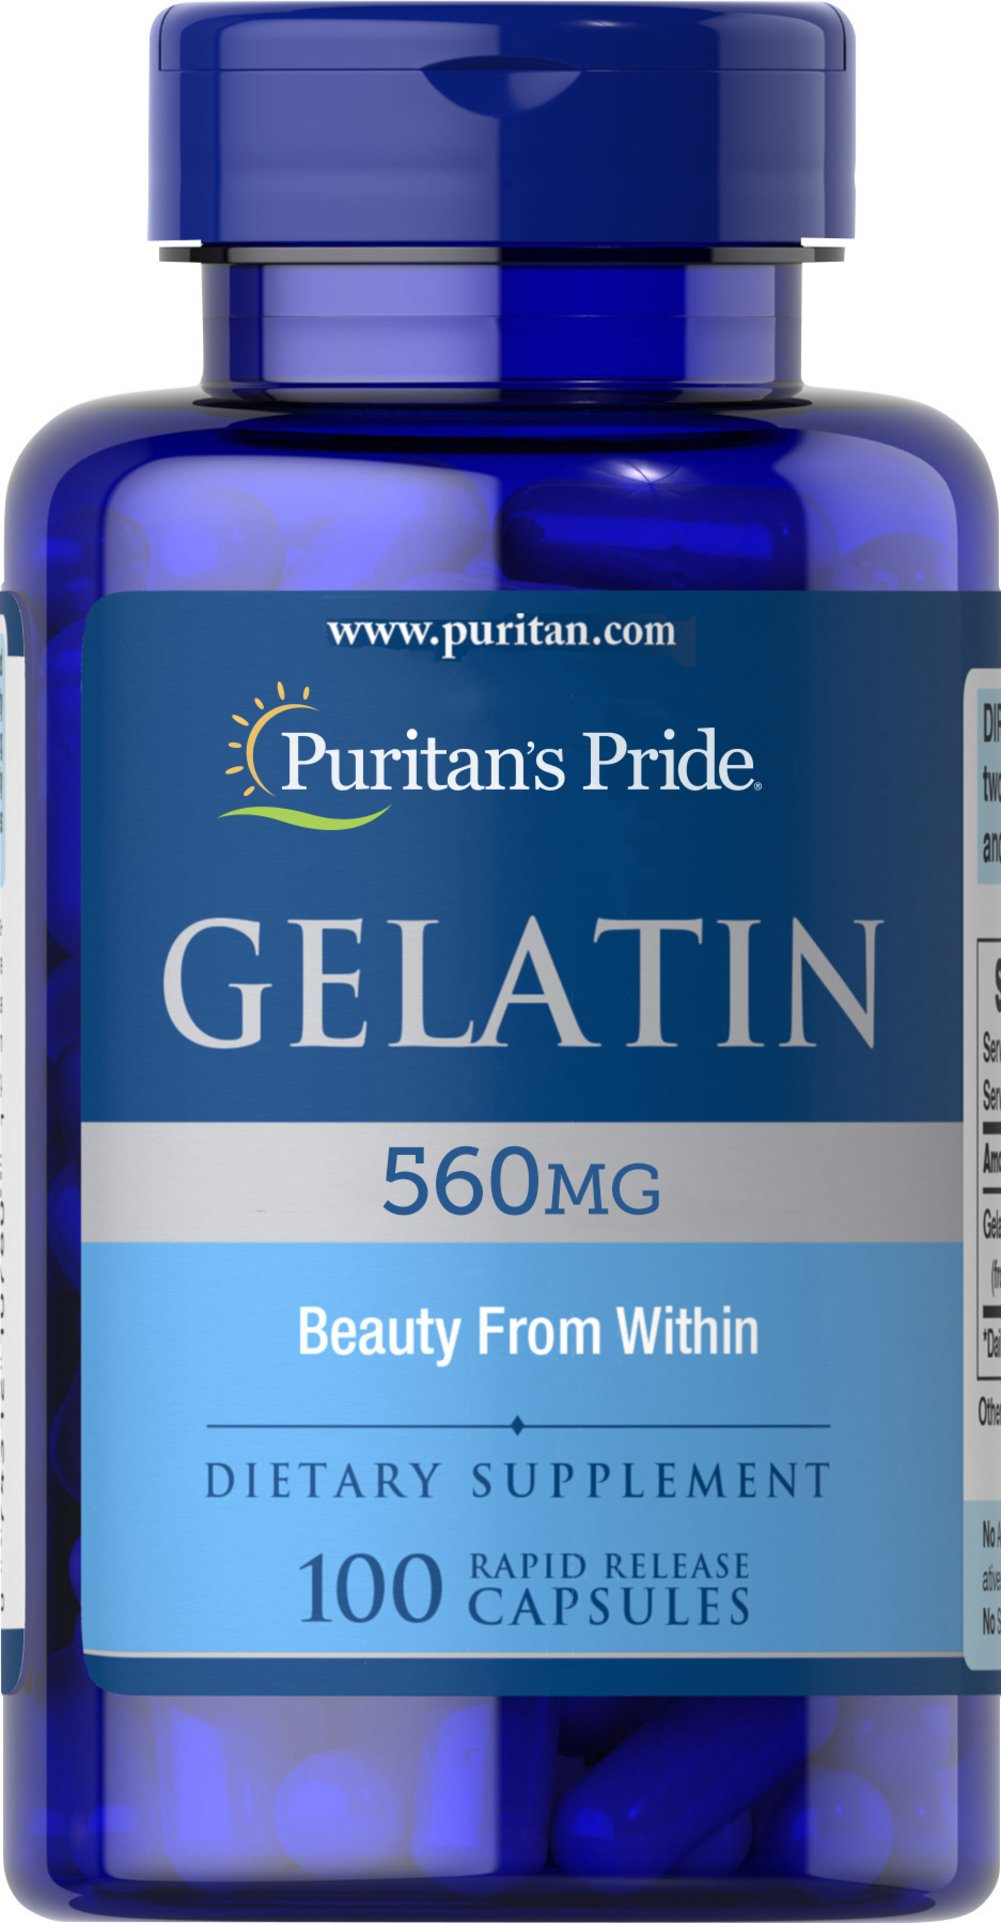 Gelatin 650 mg <p>Supports the Beauty of Nails**</p><p>An active lifestyle, harsh detergents, on-the-run nutrition - all can have an effect on the health of your nails.   Gelatin is one of the raw materials for collagen, the building block for strong, healthy nails.** As a supplement, Gelatin supports the beauty of your nails.**</p> 100 Capsules 650 mg $12.99